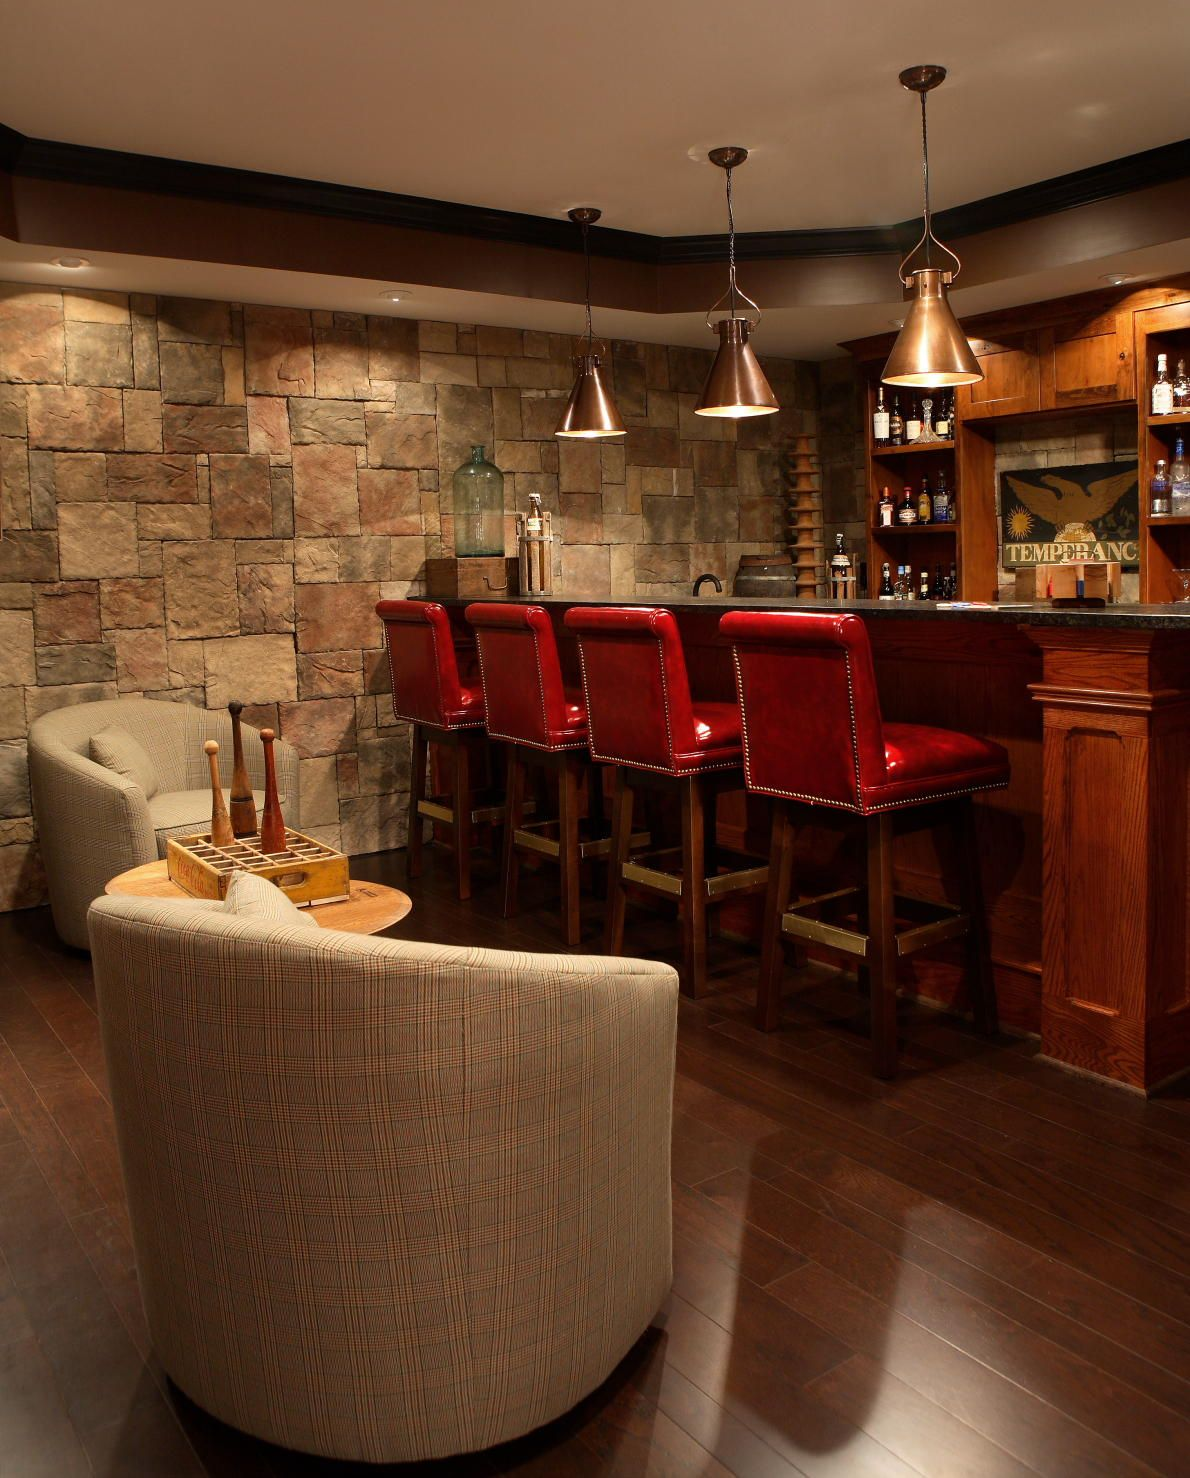 Home Design Basement Ideas: Nice Looking Basement Bar. I Also Love The Stone, Would